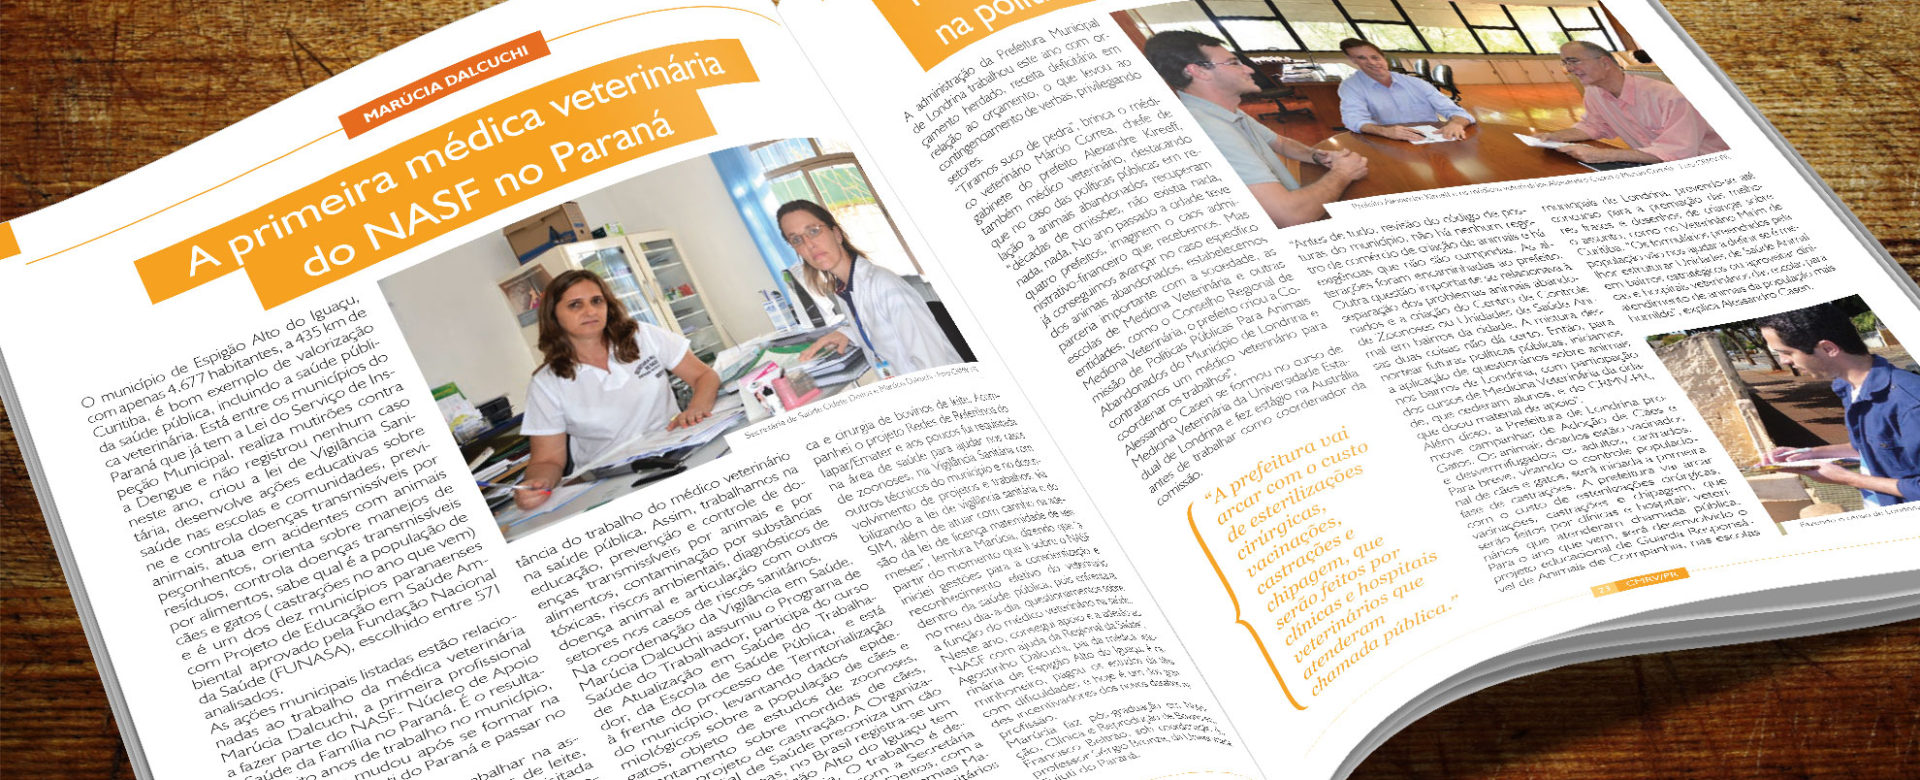 revista-veterinaria-5